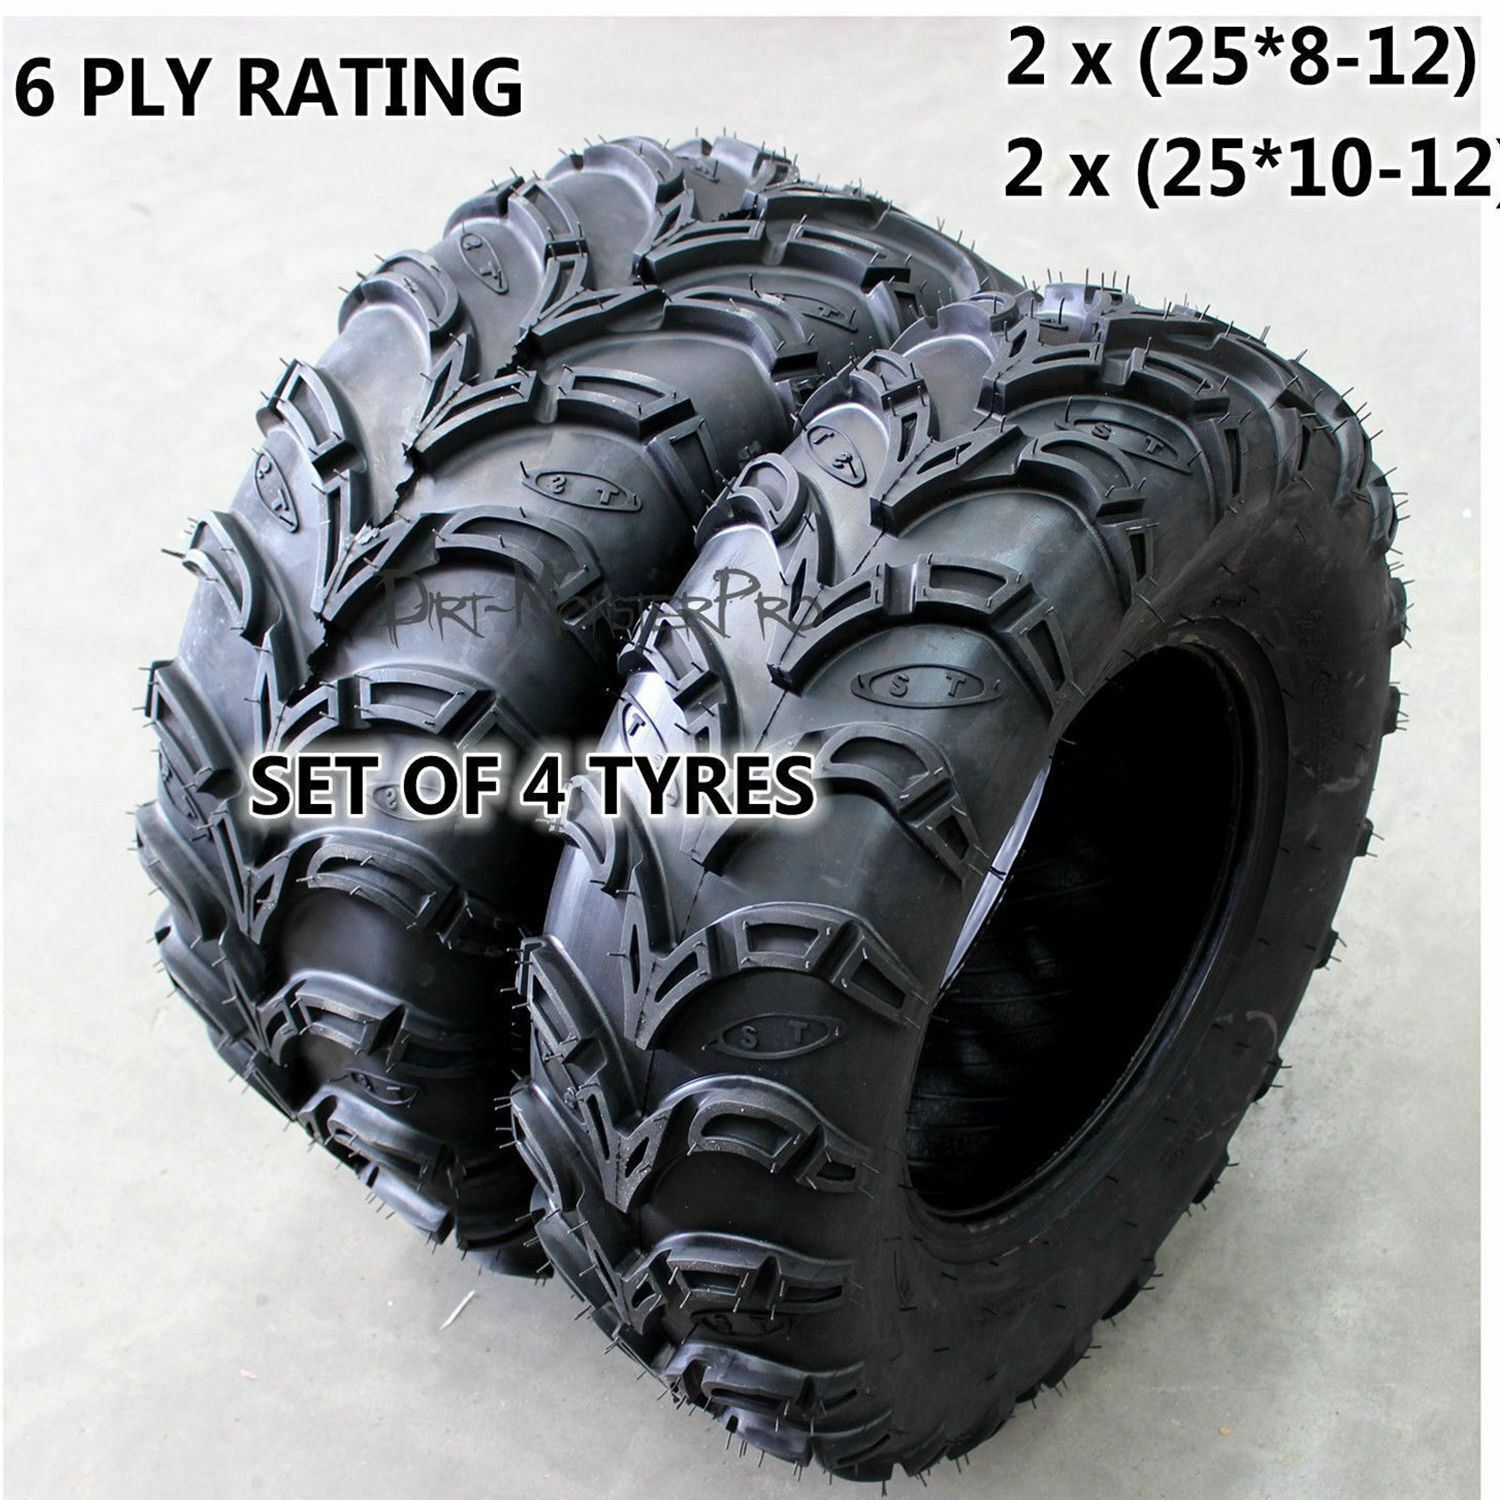 6 ply 2 25x8 12 2 25x10 12 Tire Tyre Yamaha Grizzly 350 450 700